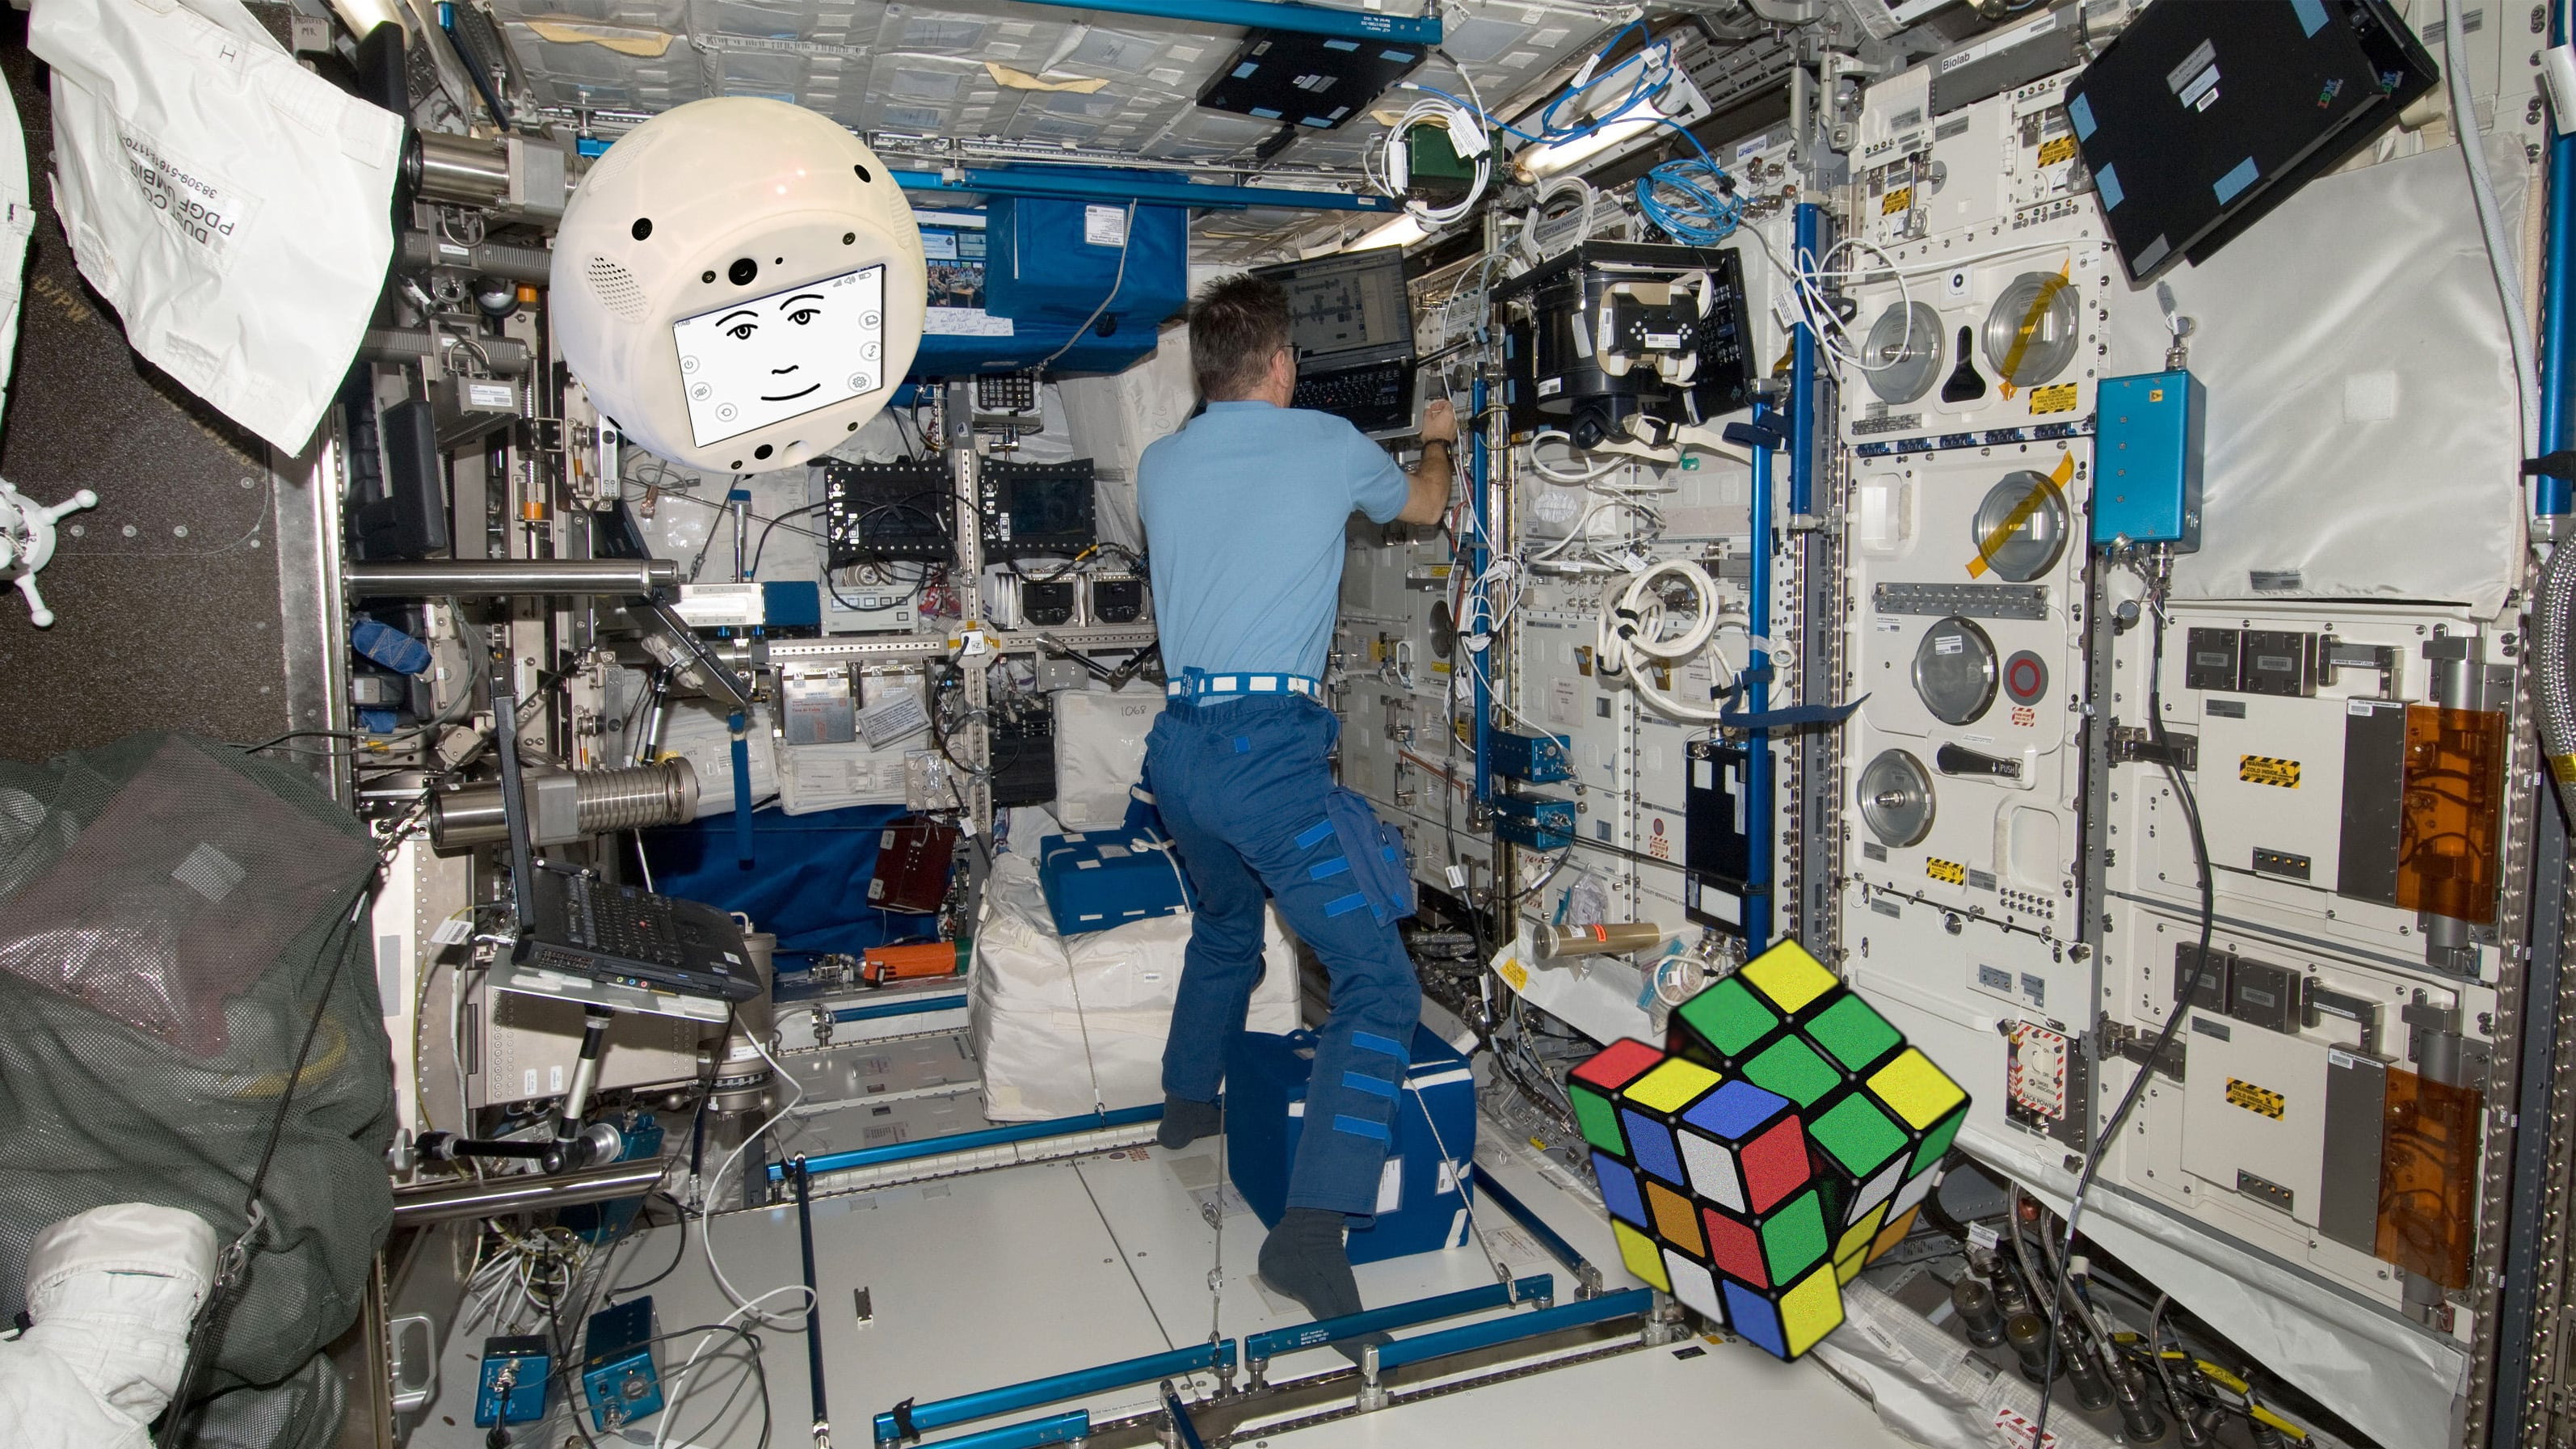 Accompanying with AI crew mate at space (International Space Station)